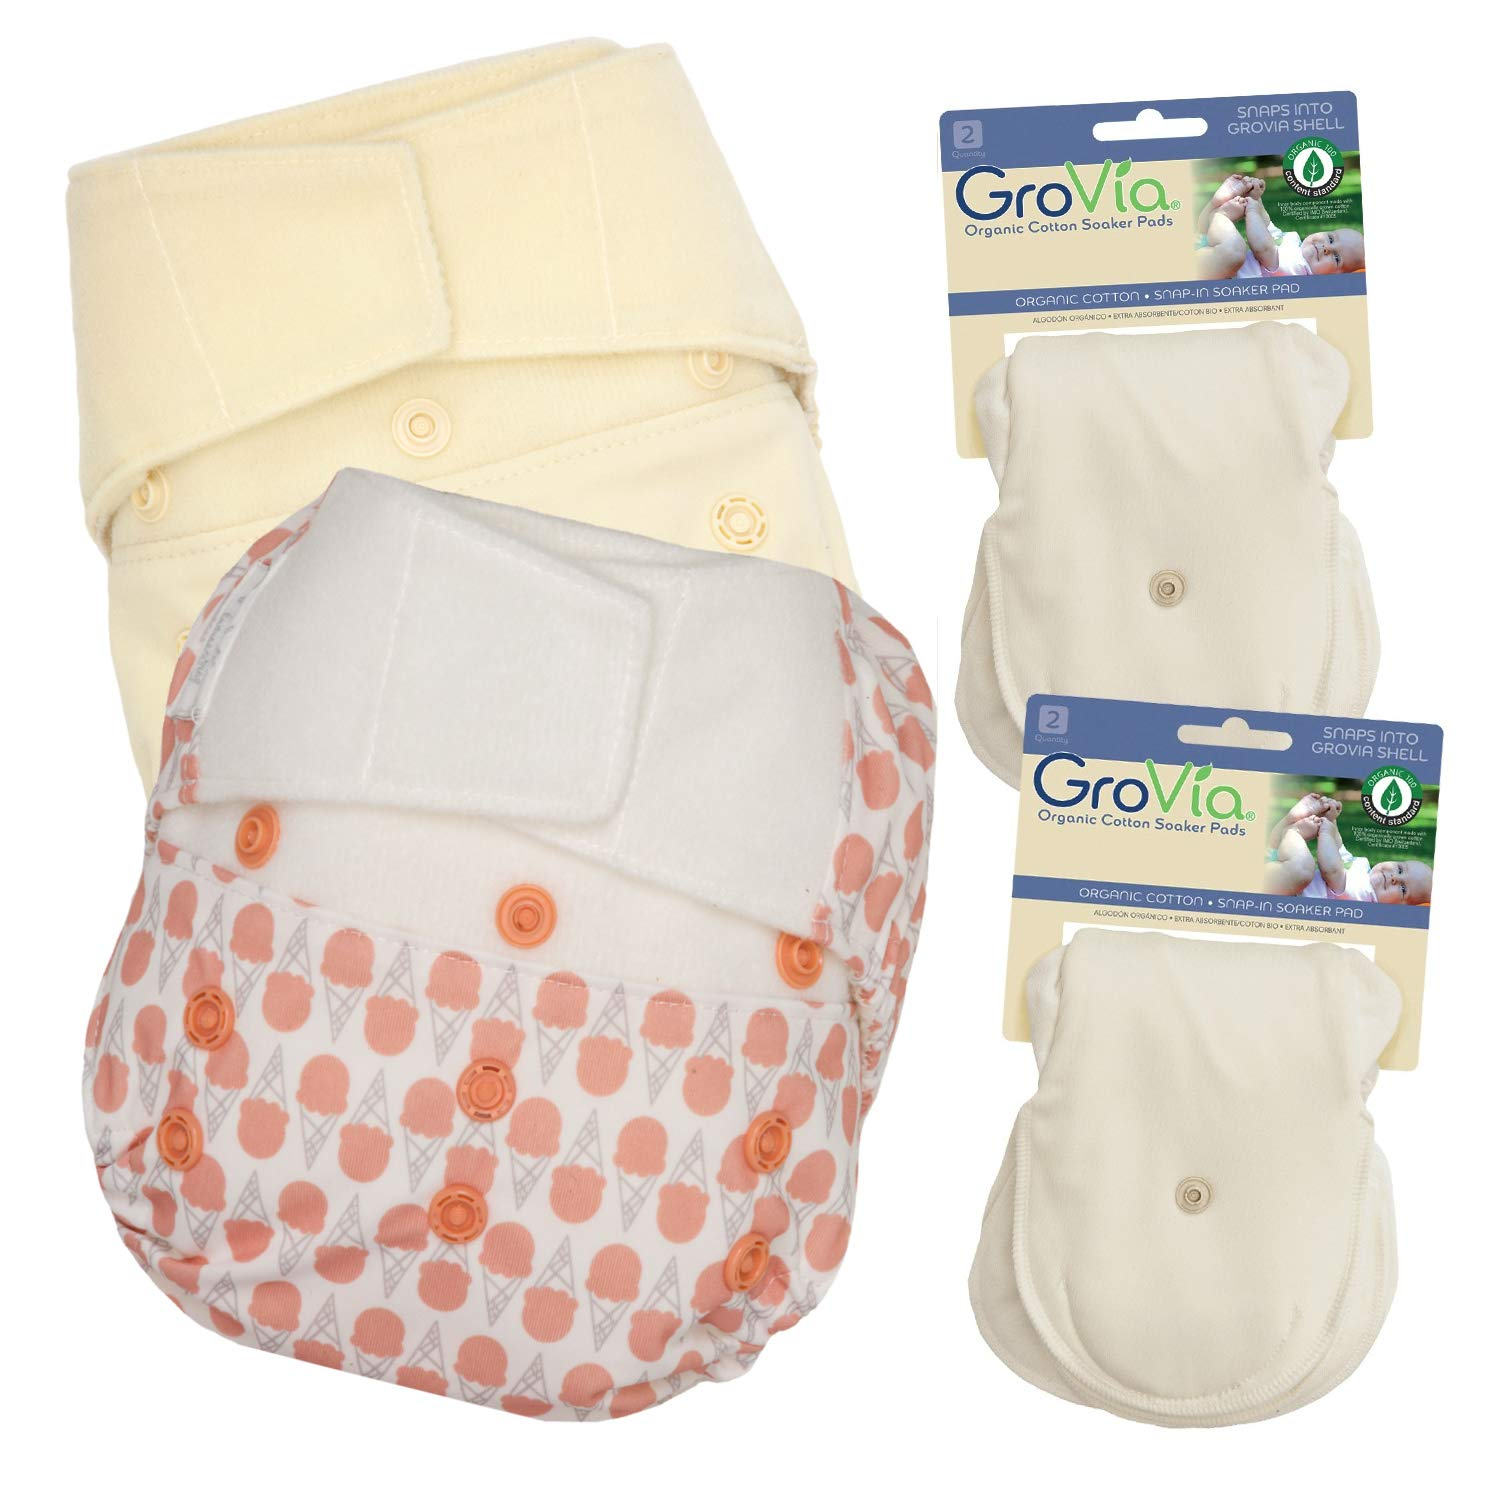 GroVia Experience Package: 2 Shells + 4 Organic Cotton Soaker Pads (Color Mix 5 Hook & Loop)